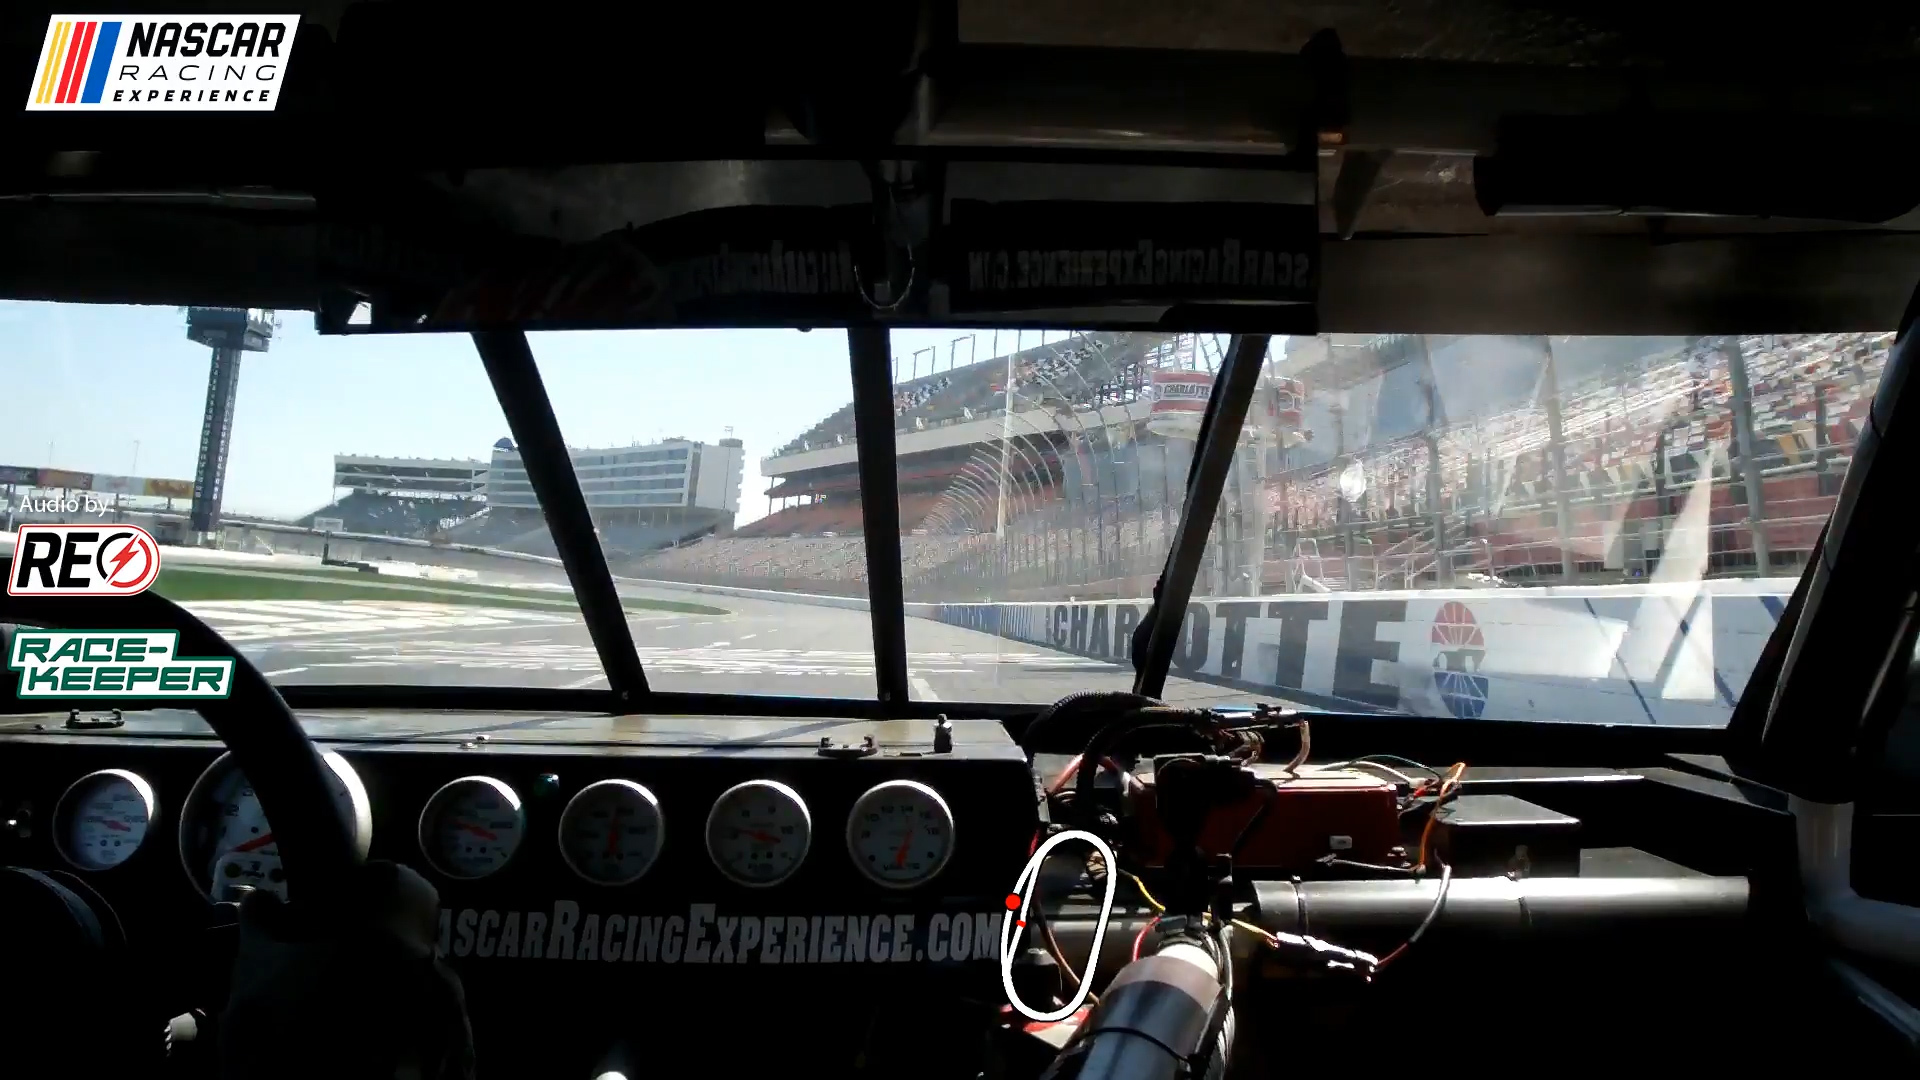 WEB EXTRA: Going For A Ride In Charlotte